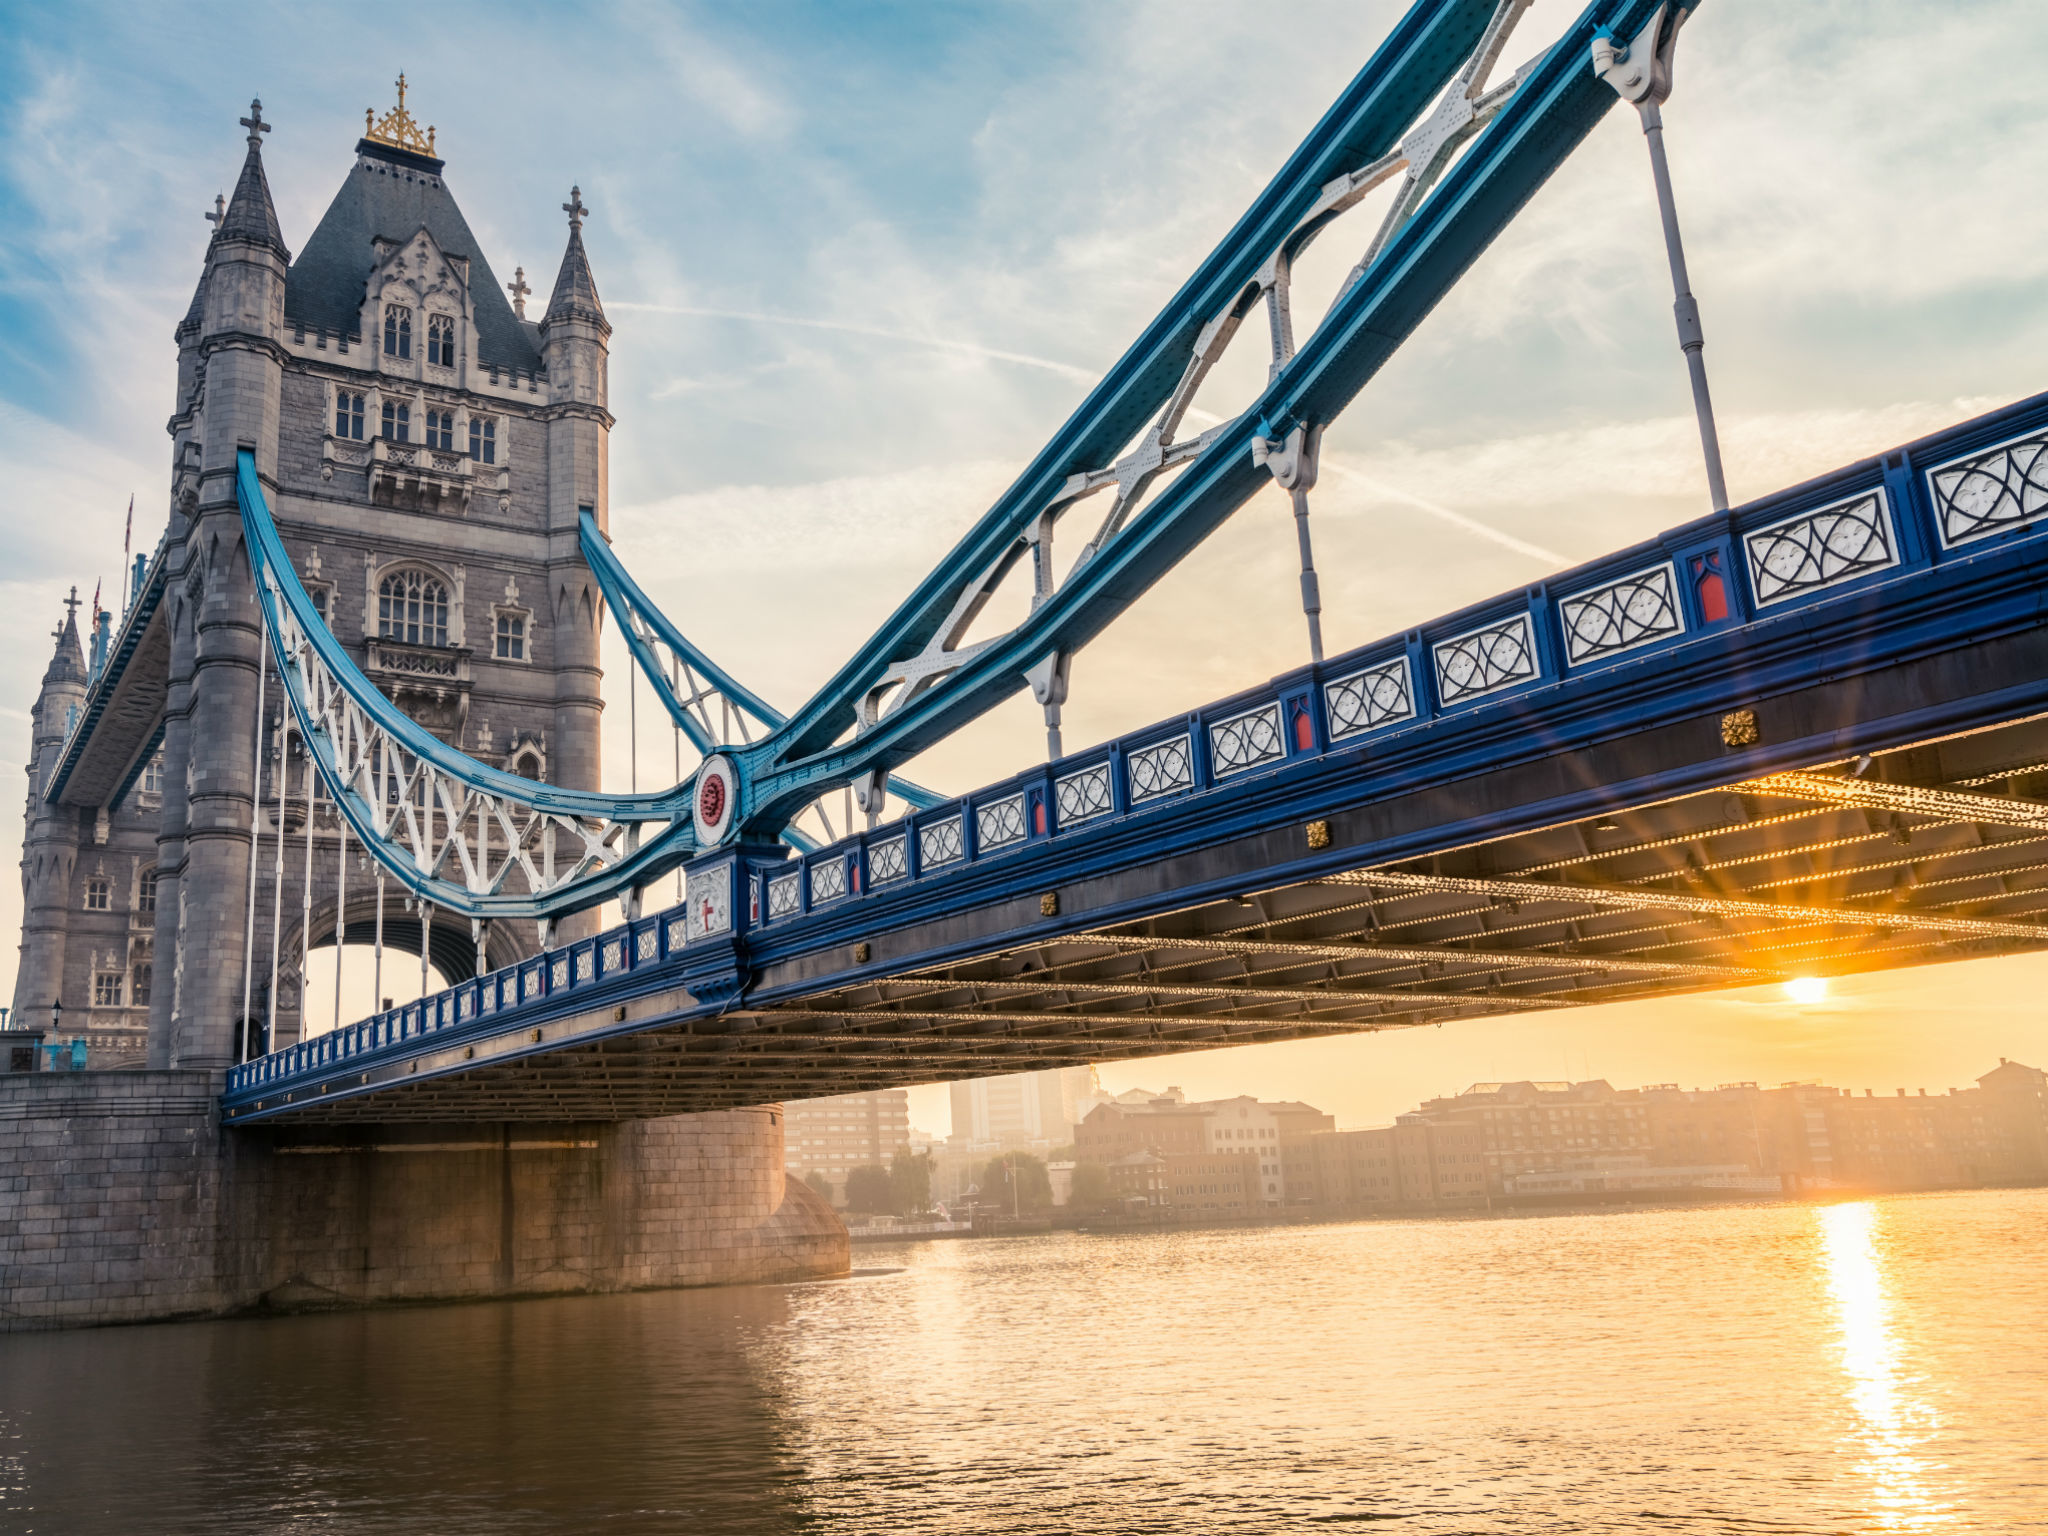 Most Googled: Why is Tower Bridge blue?